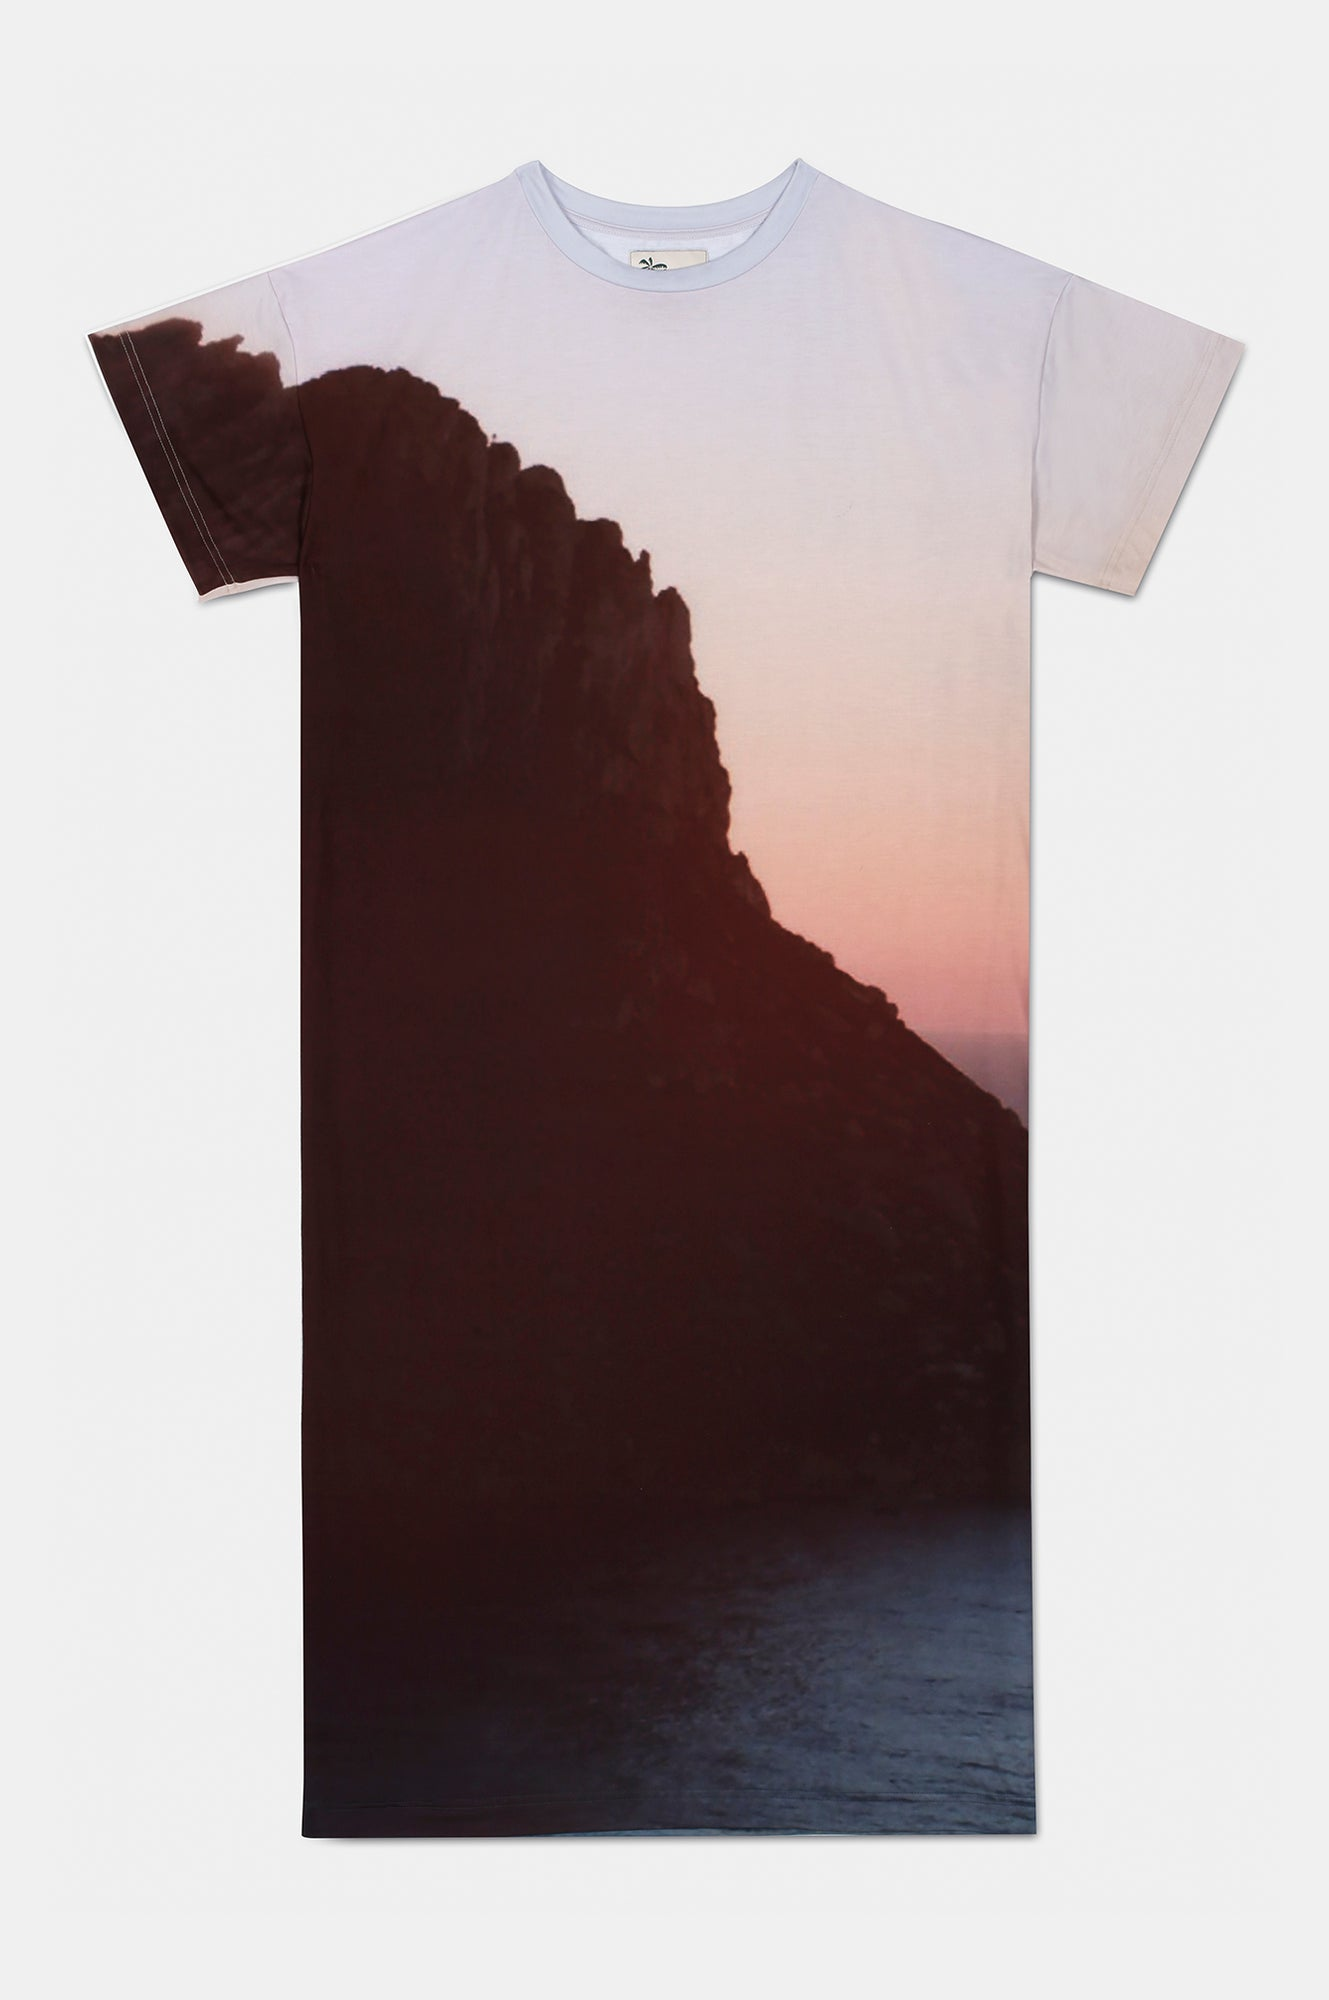 ES VEDRA SUNSET PRINT T-SHIRT DRESS